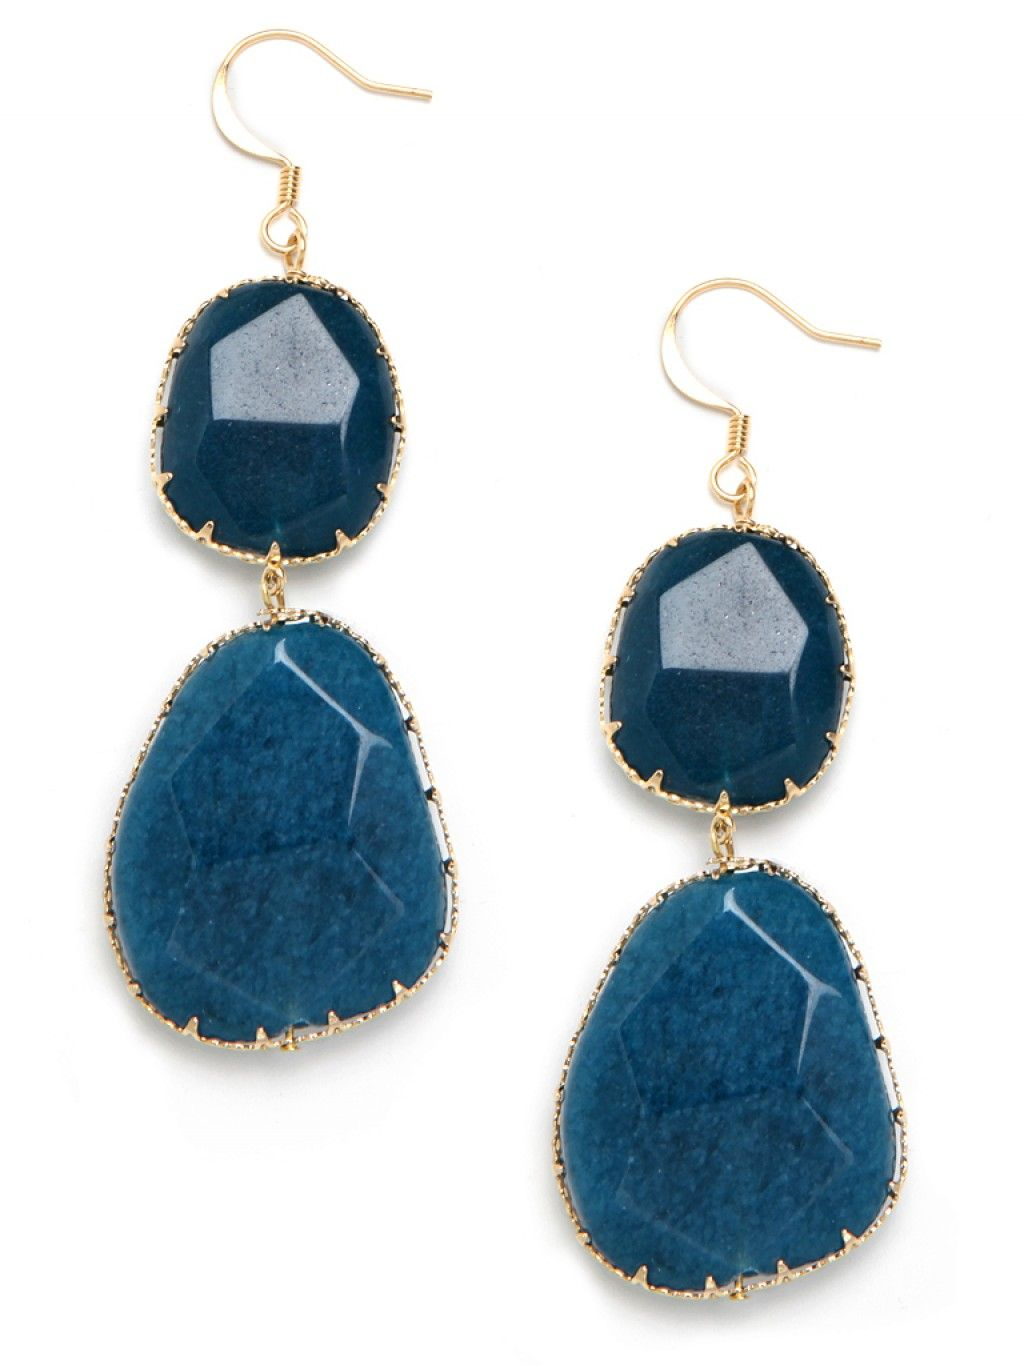 beautiful indigo earrings.  This site - Bauble Bar - has great jewelry